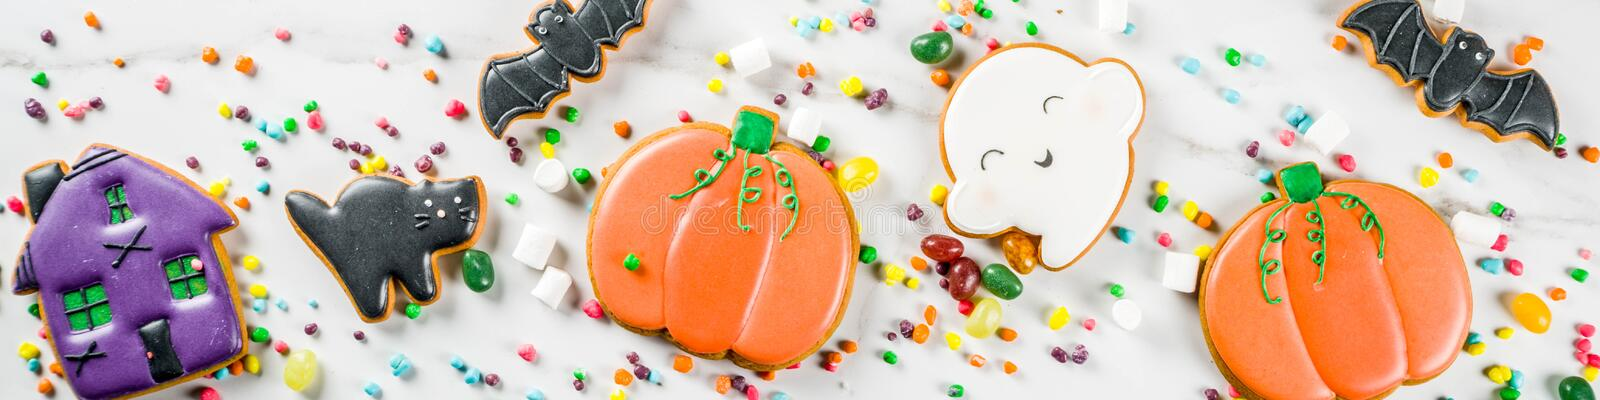 Halloween cookies and candies royalty free stock images